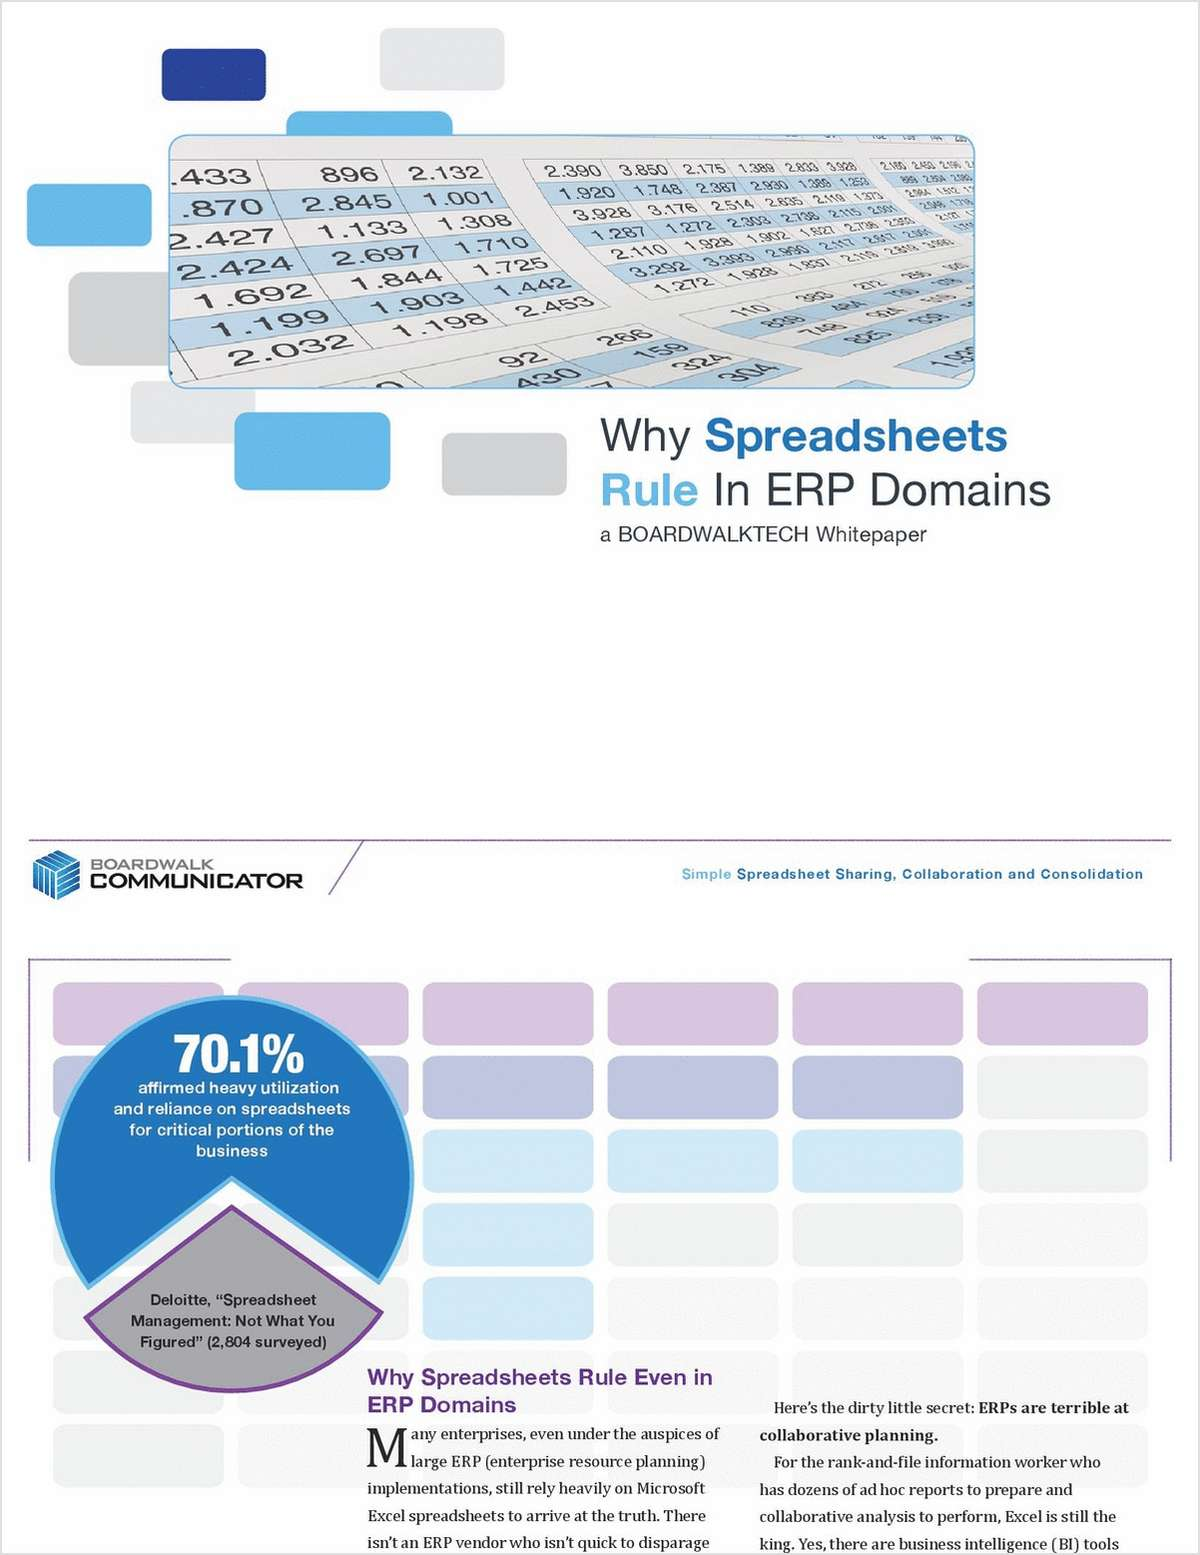 Why Do Spreadsheets Rule Even in ERP Environments?